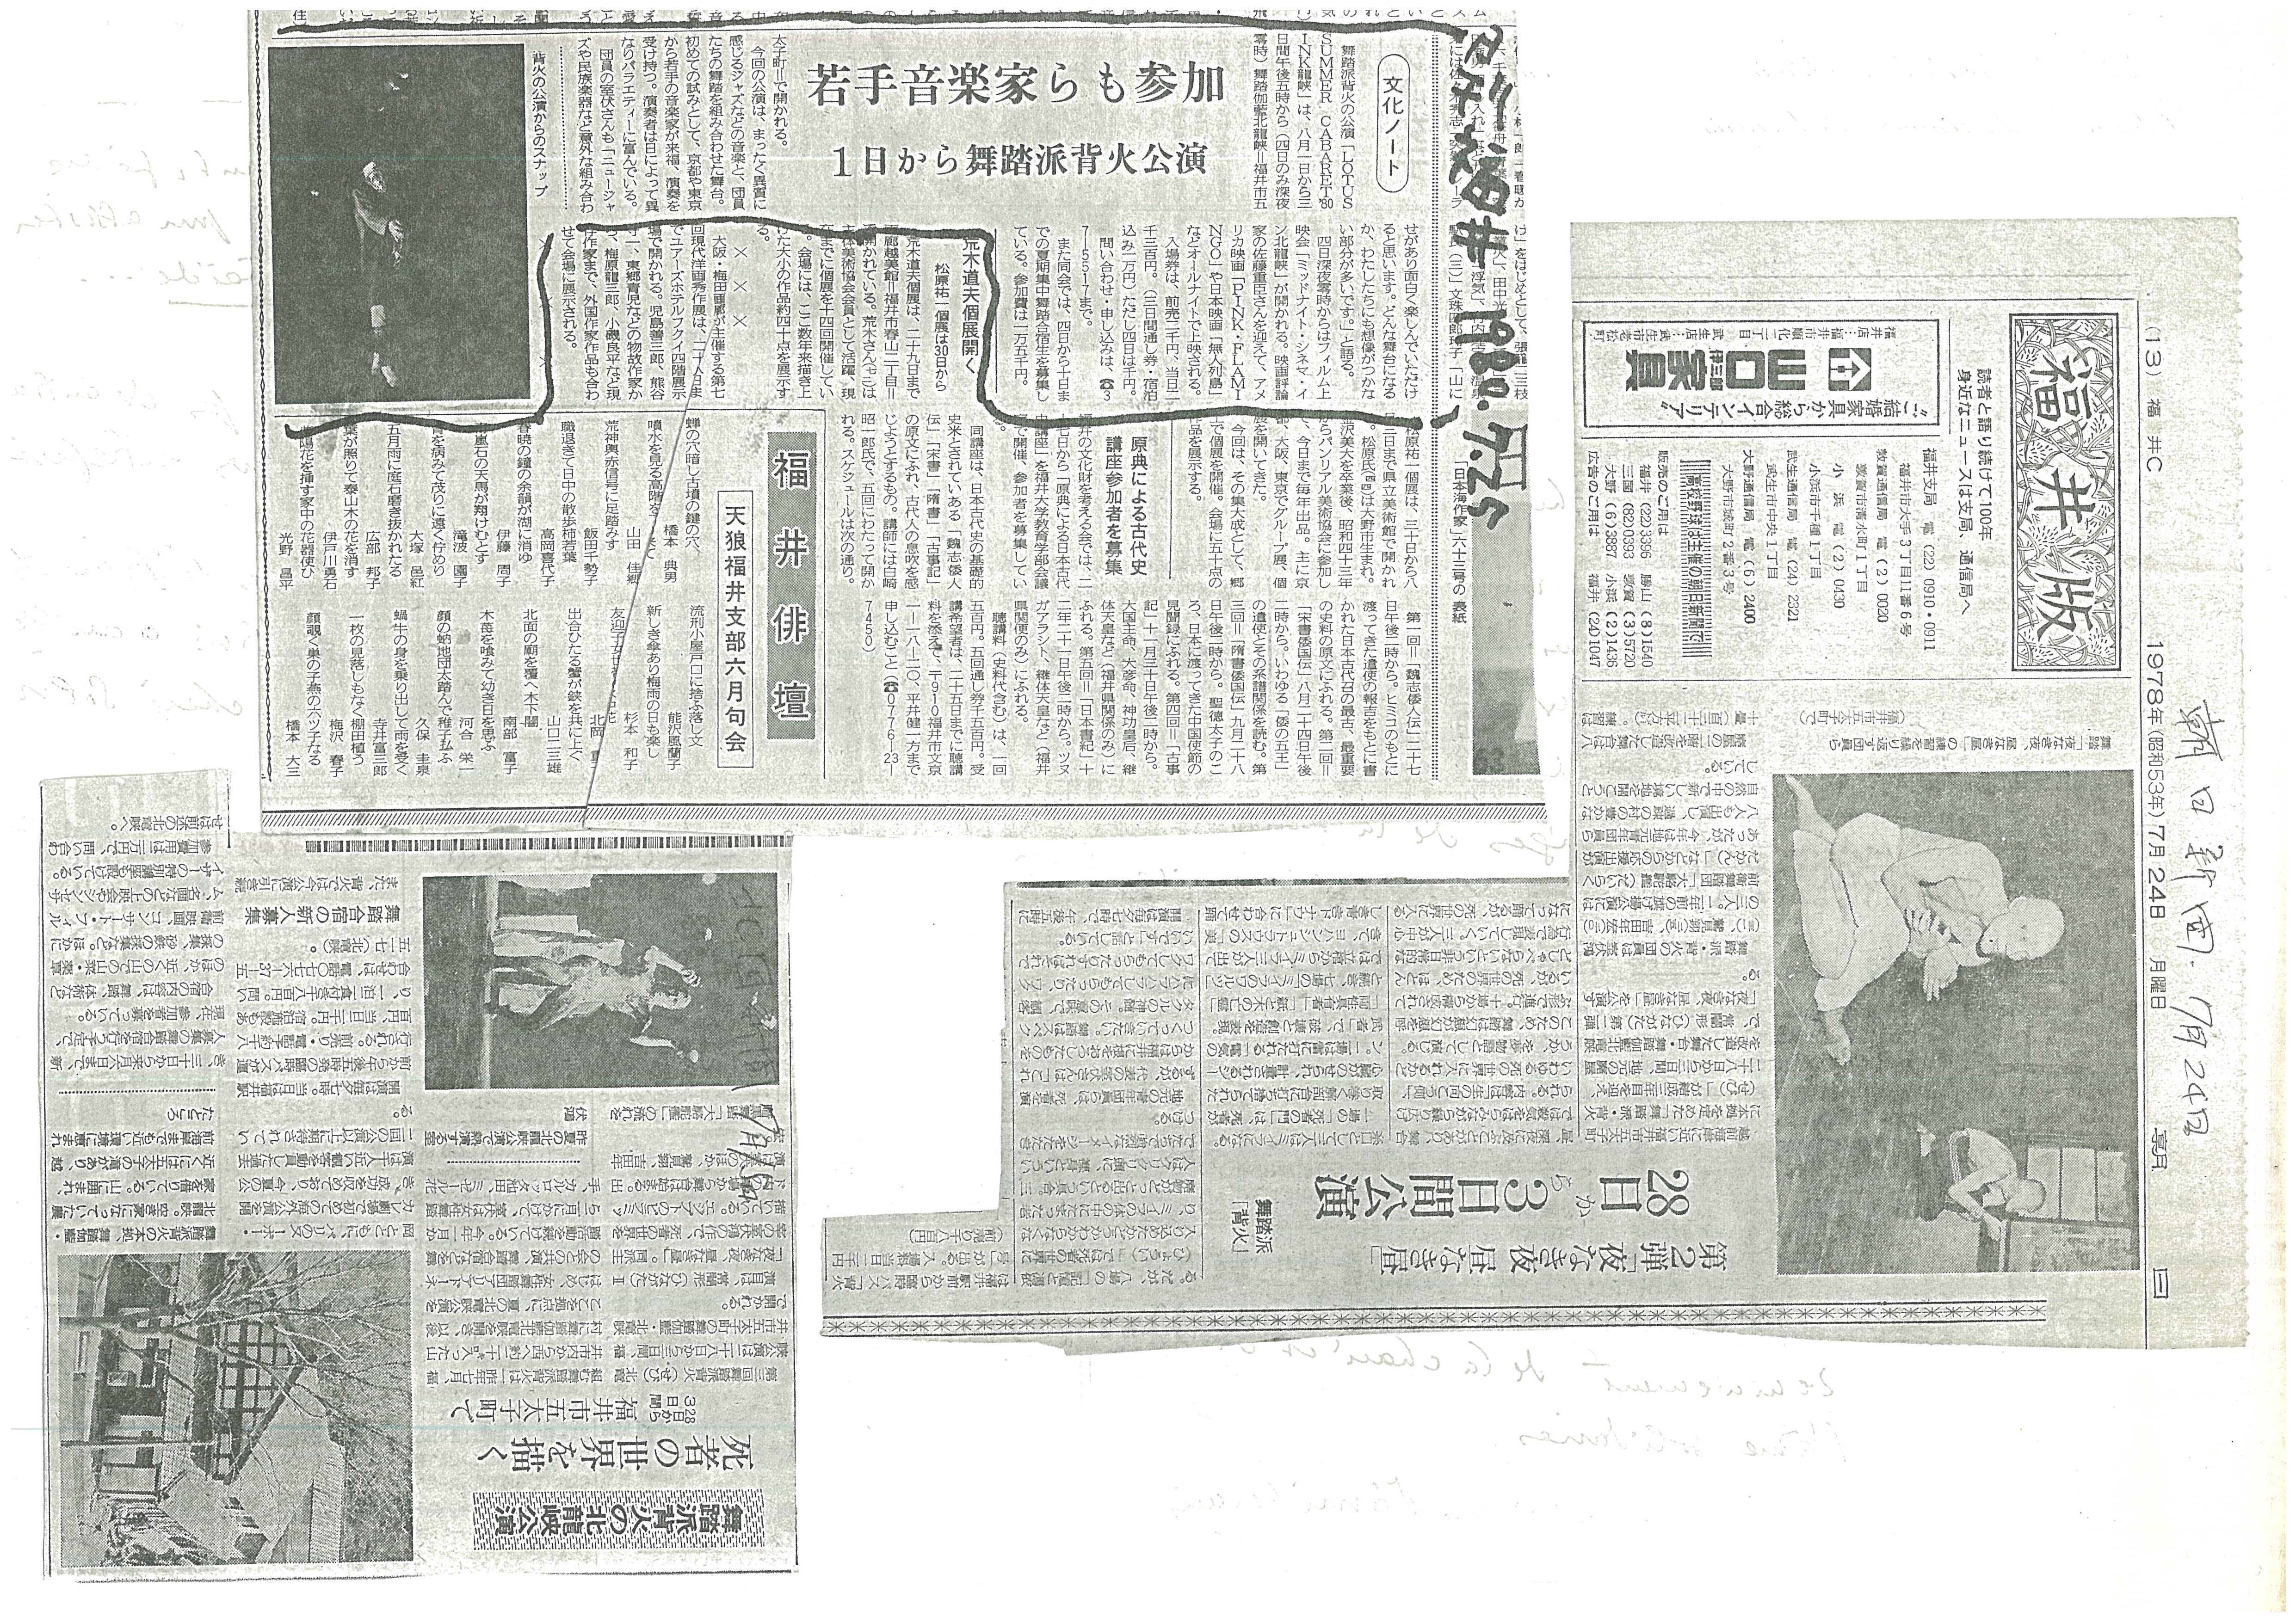 LOTUS SUMMER CABARET '80 - Midnight Cinema in Hokuryukyo[Newspaper]